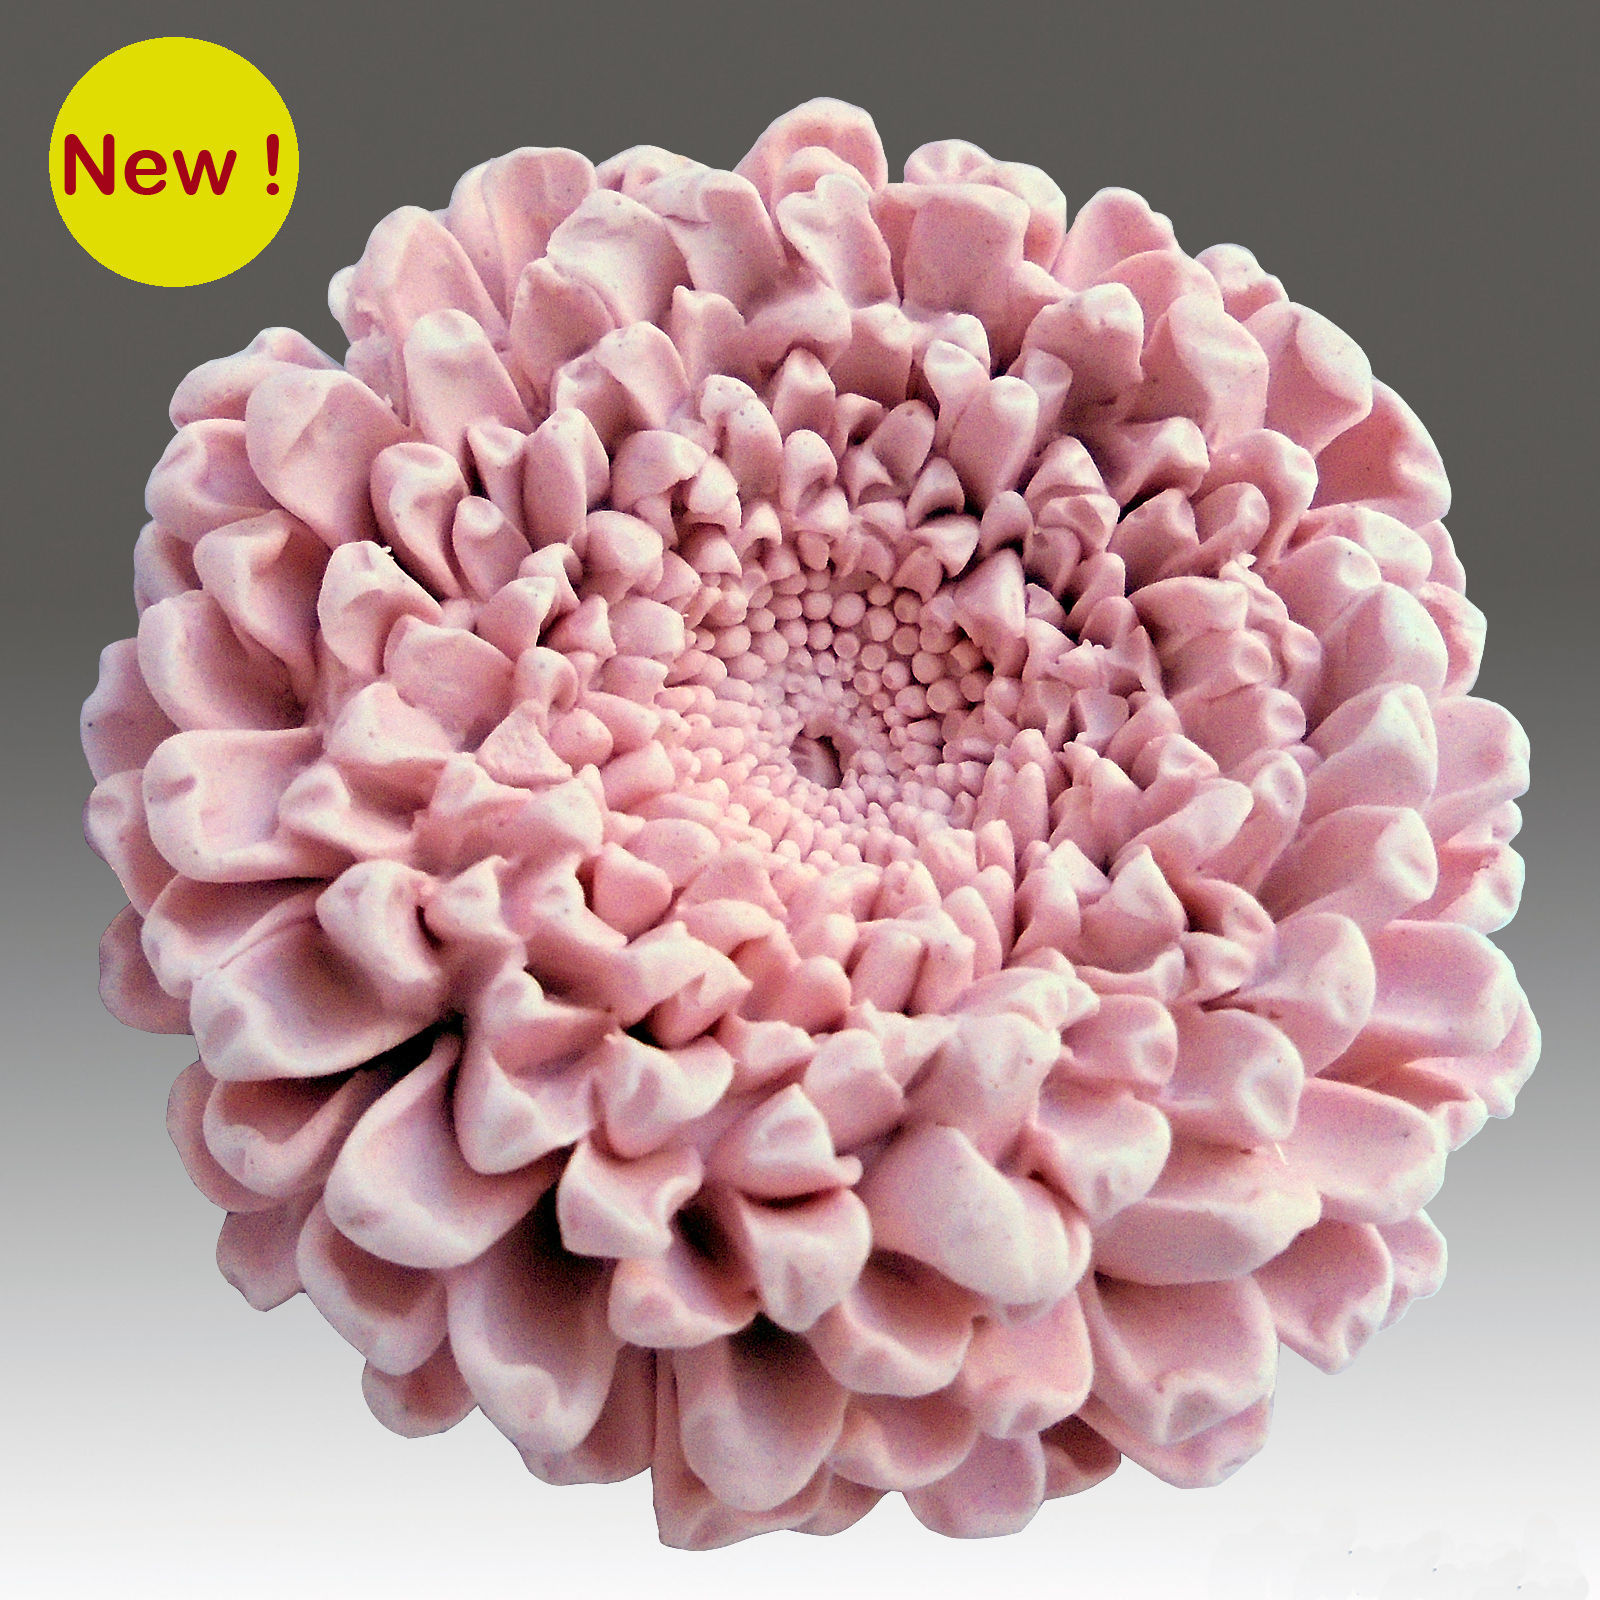 Silicone MP soap mold Silicone Mold 3D Blooming Chrysanthemum